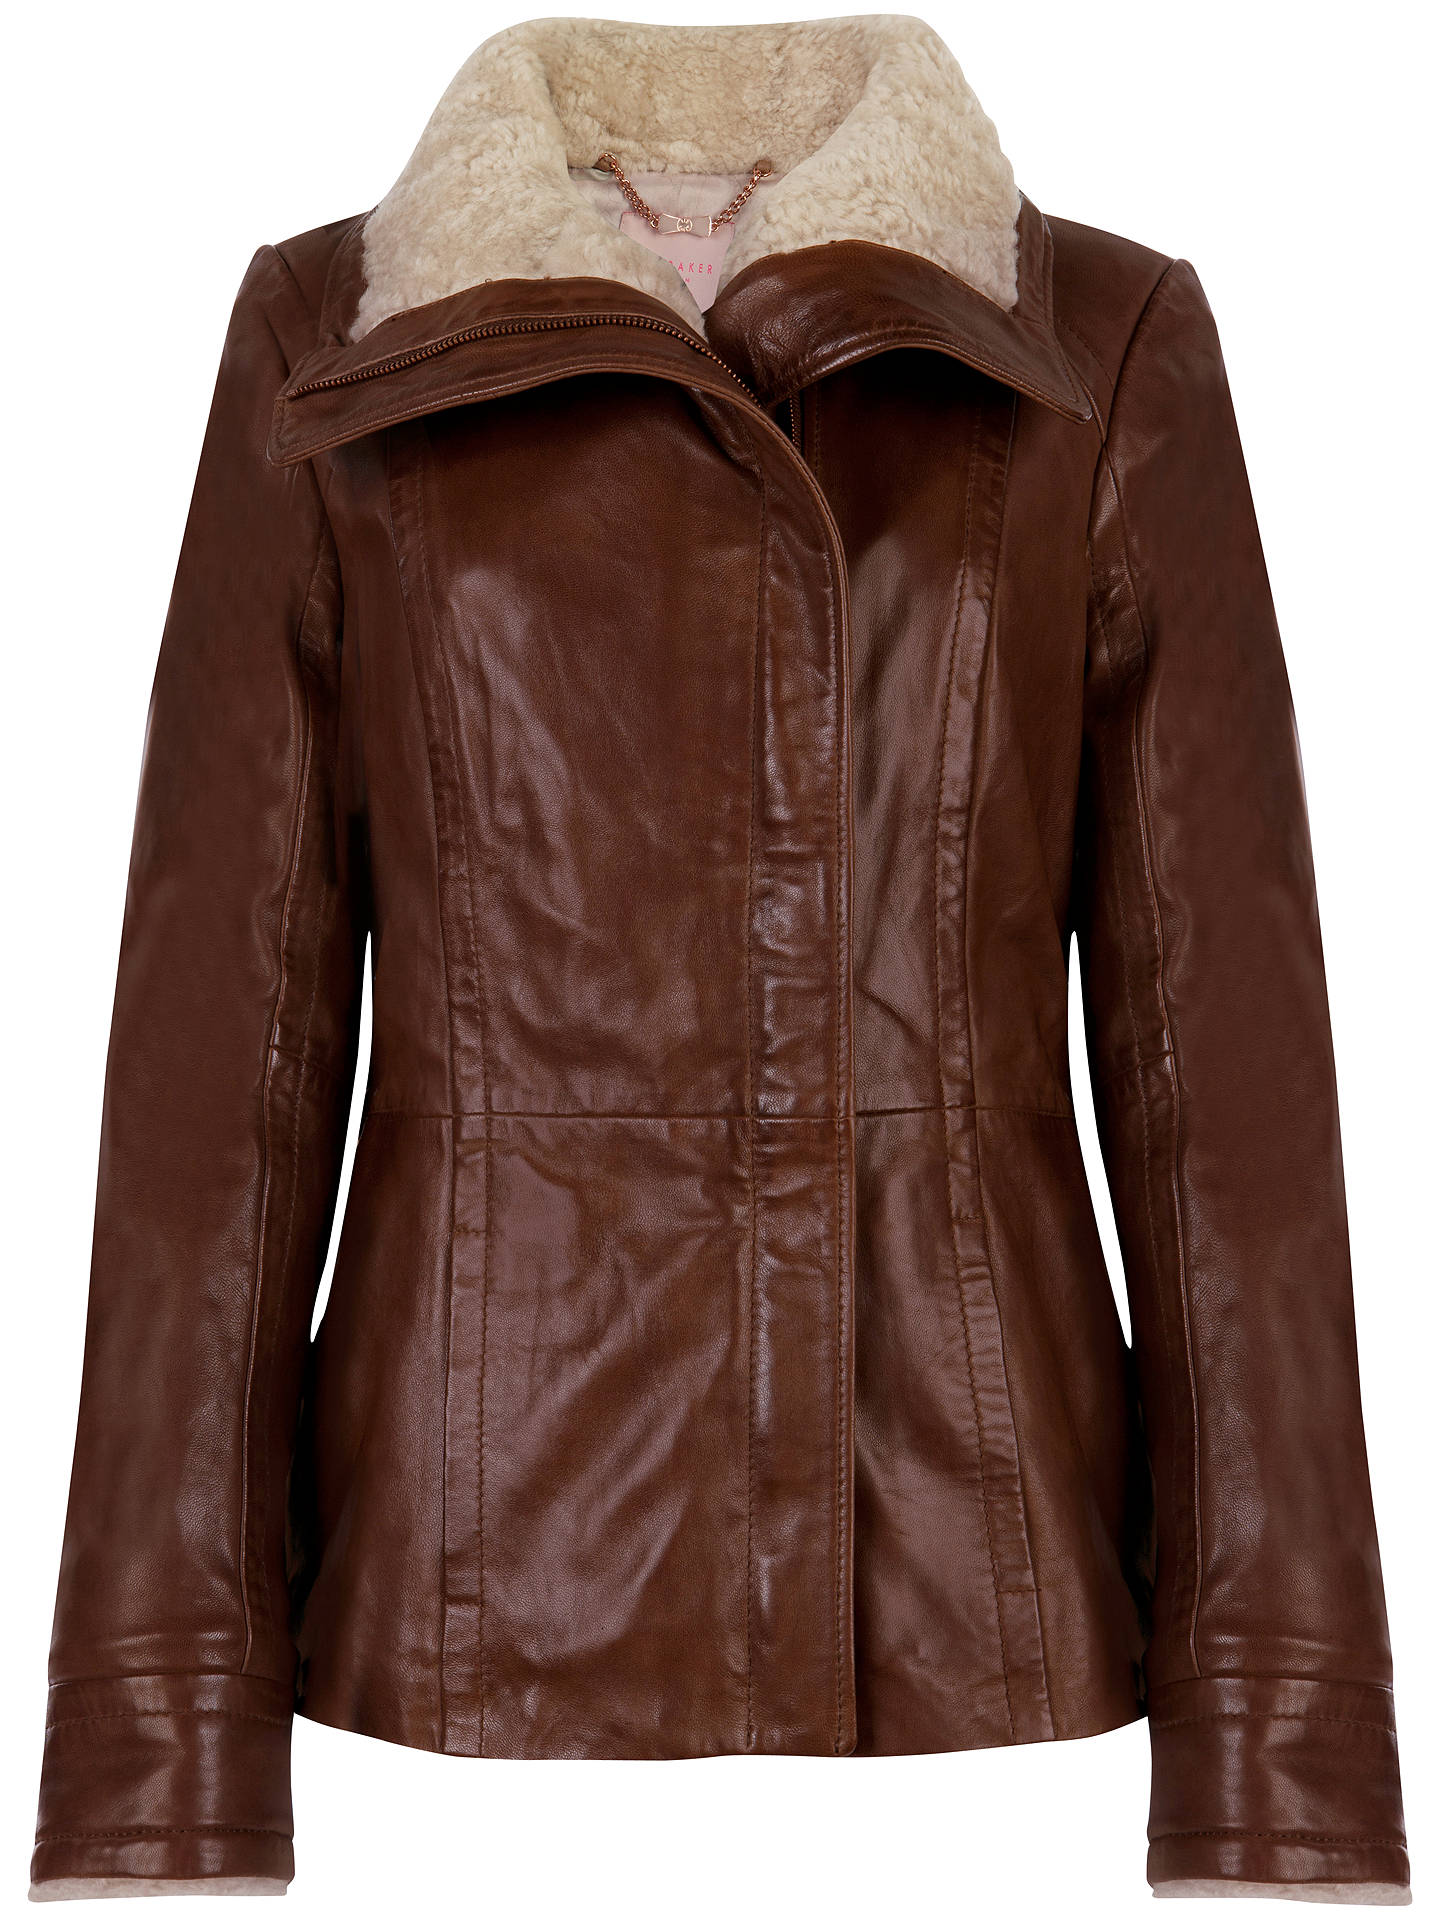 Watch Mrs Browns Boys Christmas 2020 0online Free Ted Baker Amilia Shearling Leather Jacket, Brown at John Lewis